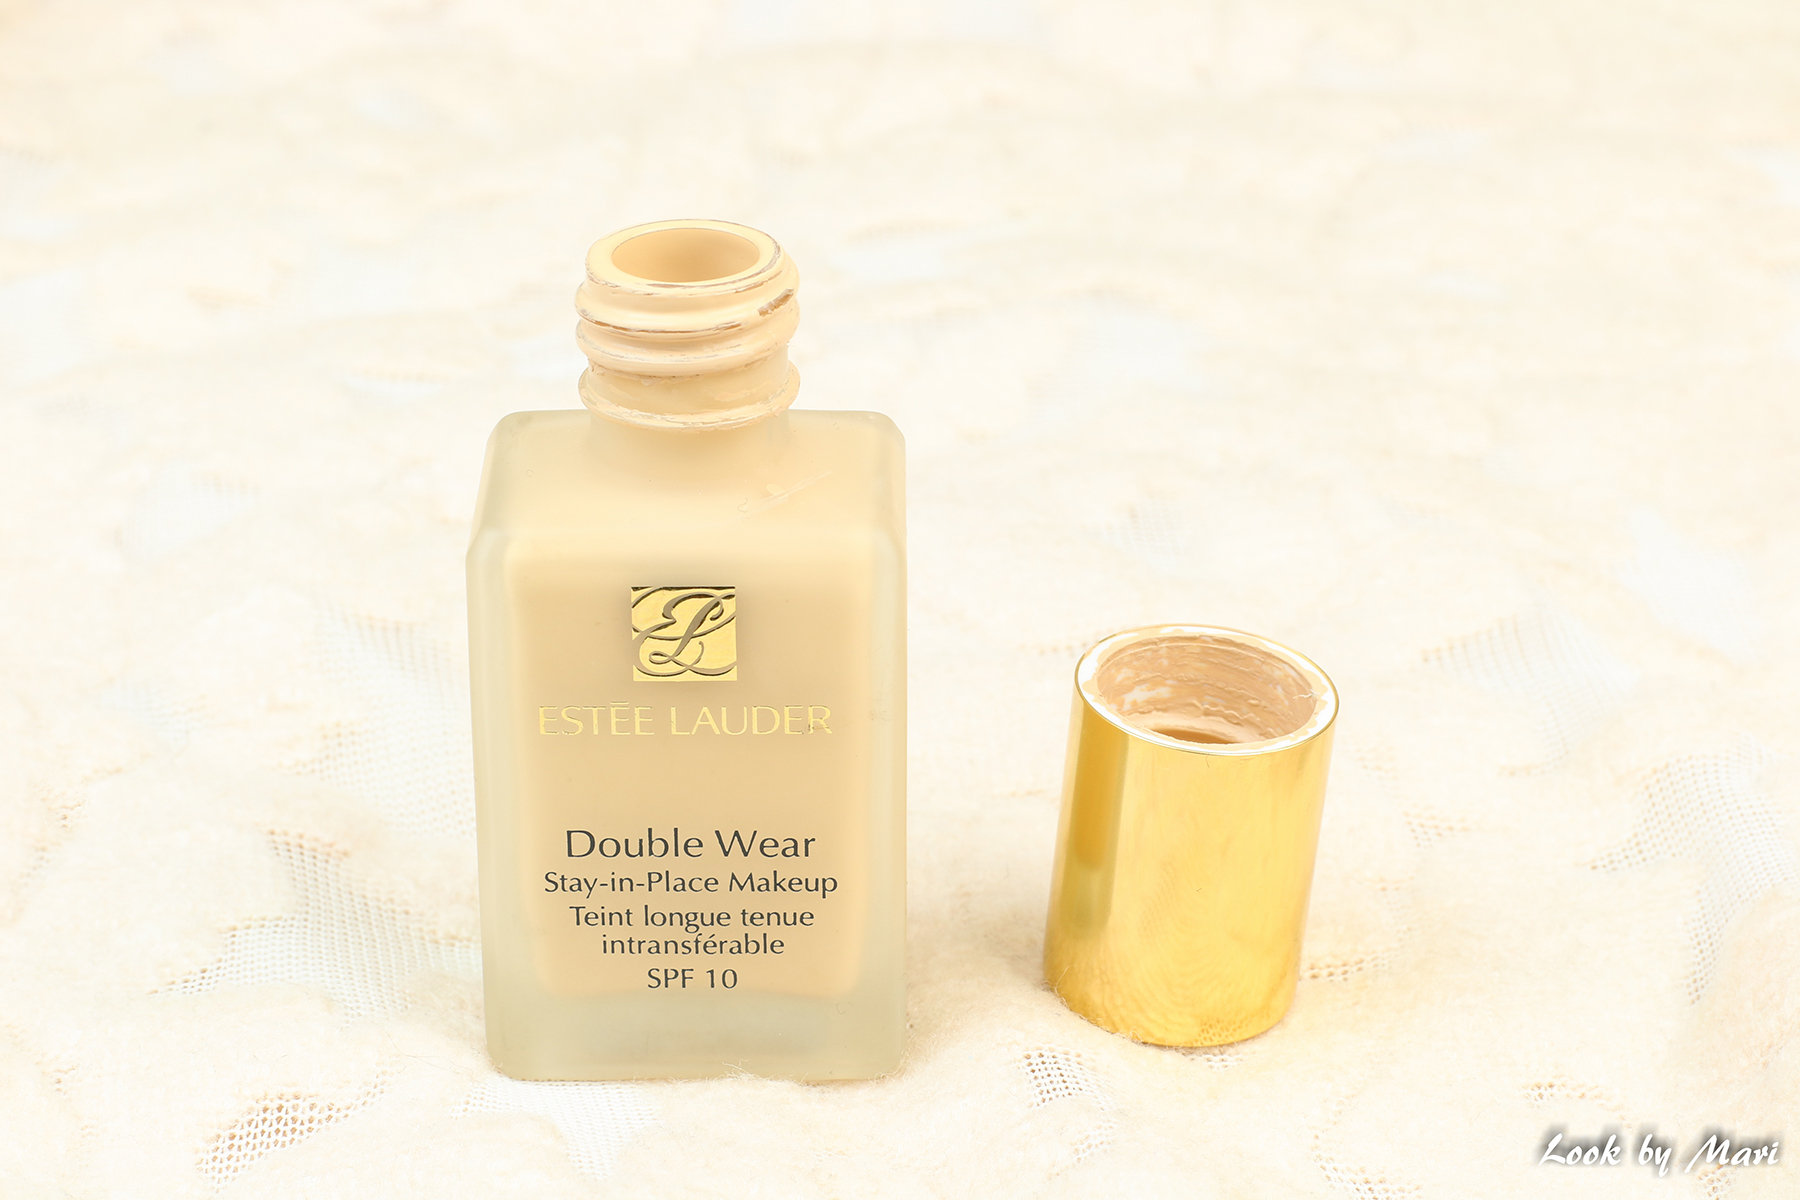 12 estee lauder double wear foundation for oile skin combination skin review